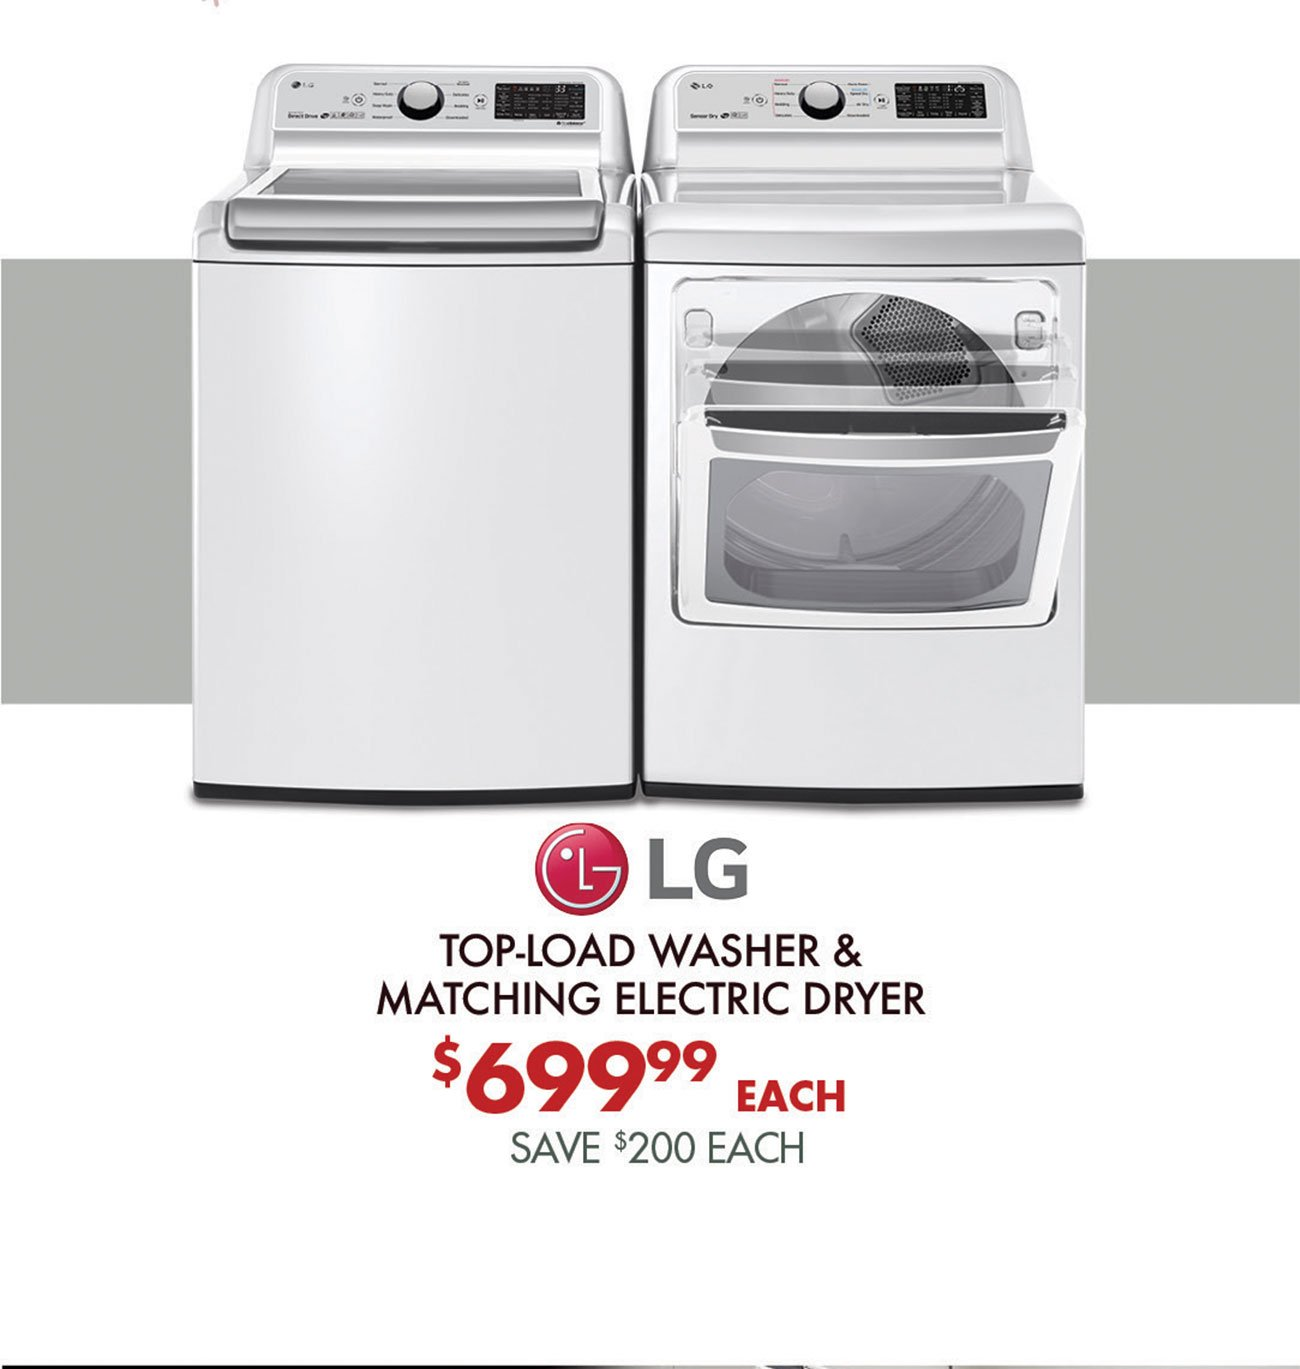 LG-Top-Load-Washer-Dryer-UIRV